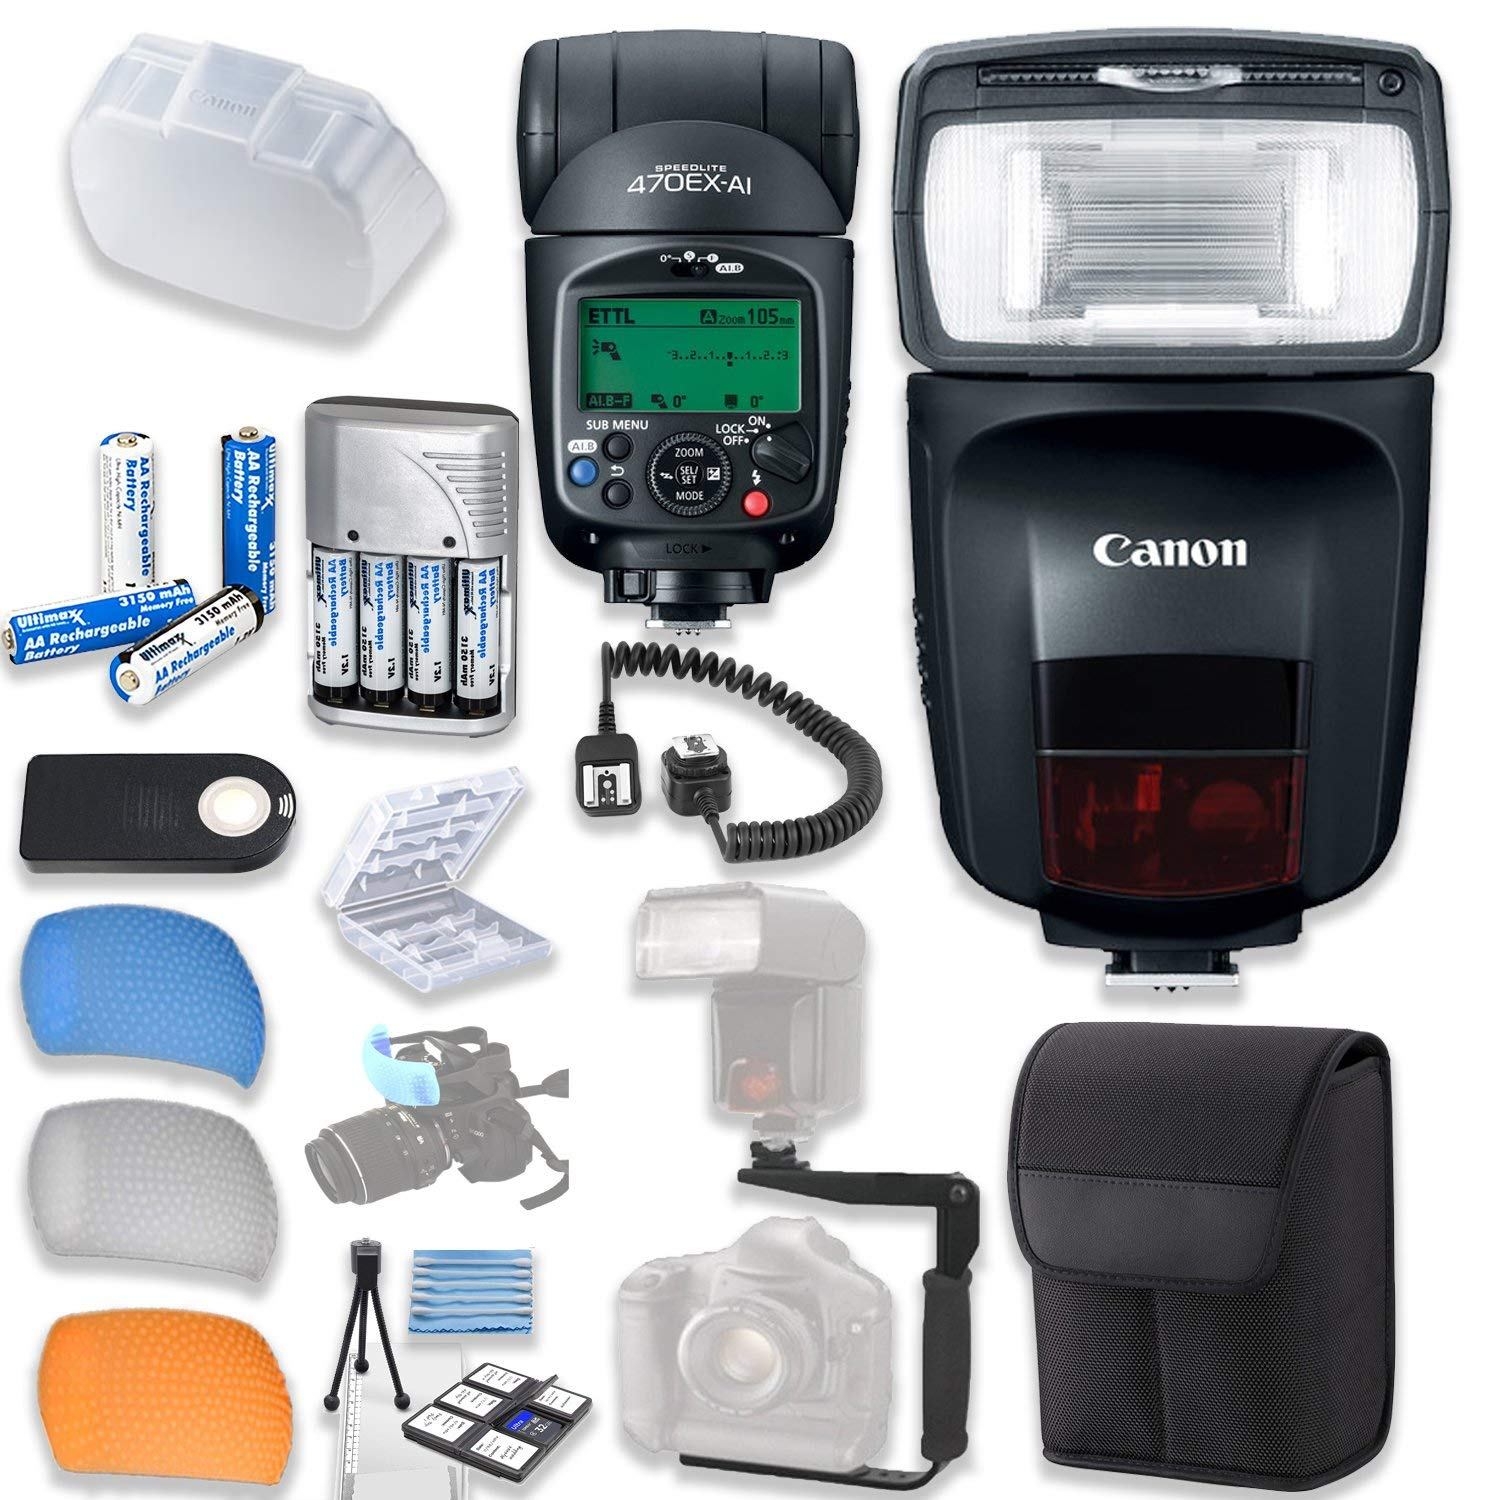 Canon Speedlite 470EX-AI Flash with Canon Speedlite Case + TTL Cord + Flash L-Bracket + Flash Diffusers + 4 High Capacity AA Rechargeable Batteries & Charger + Accessory Bundle by Canon